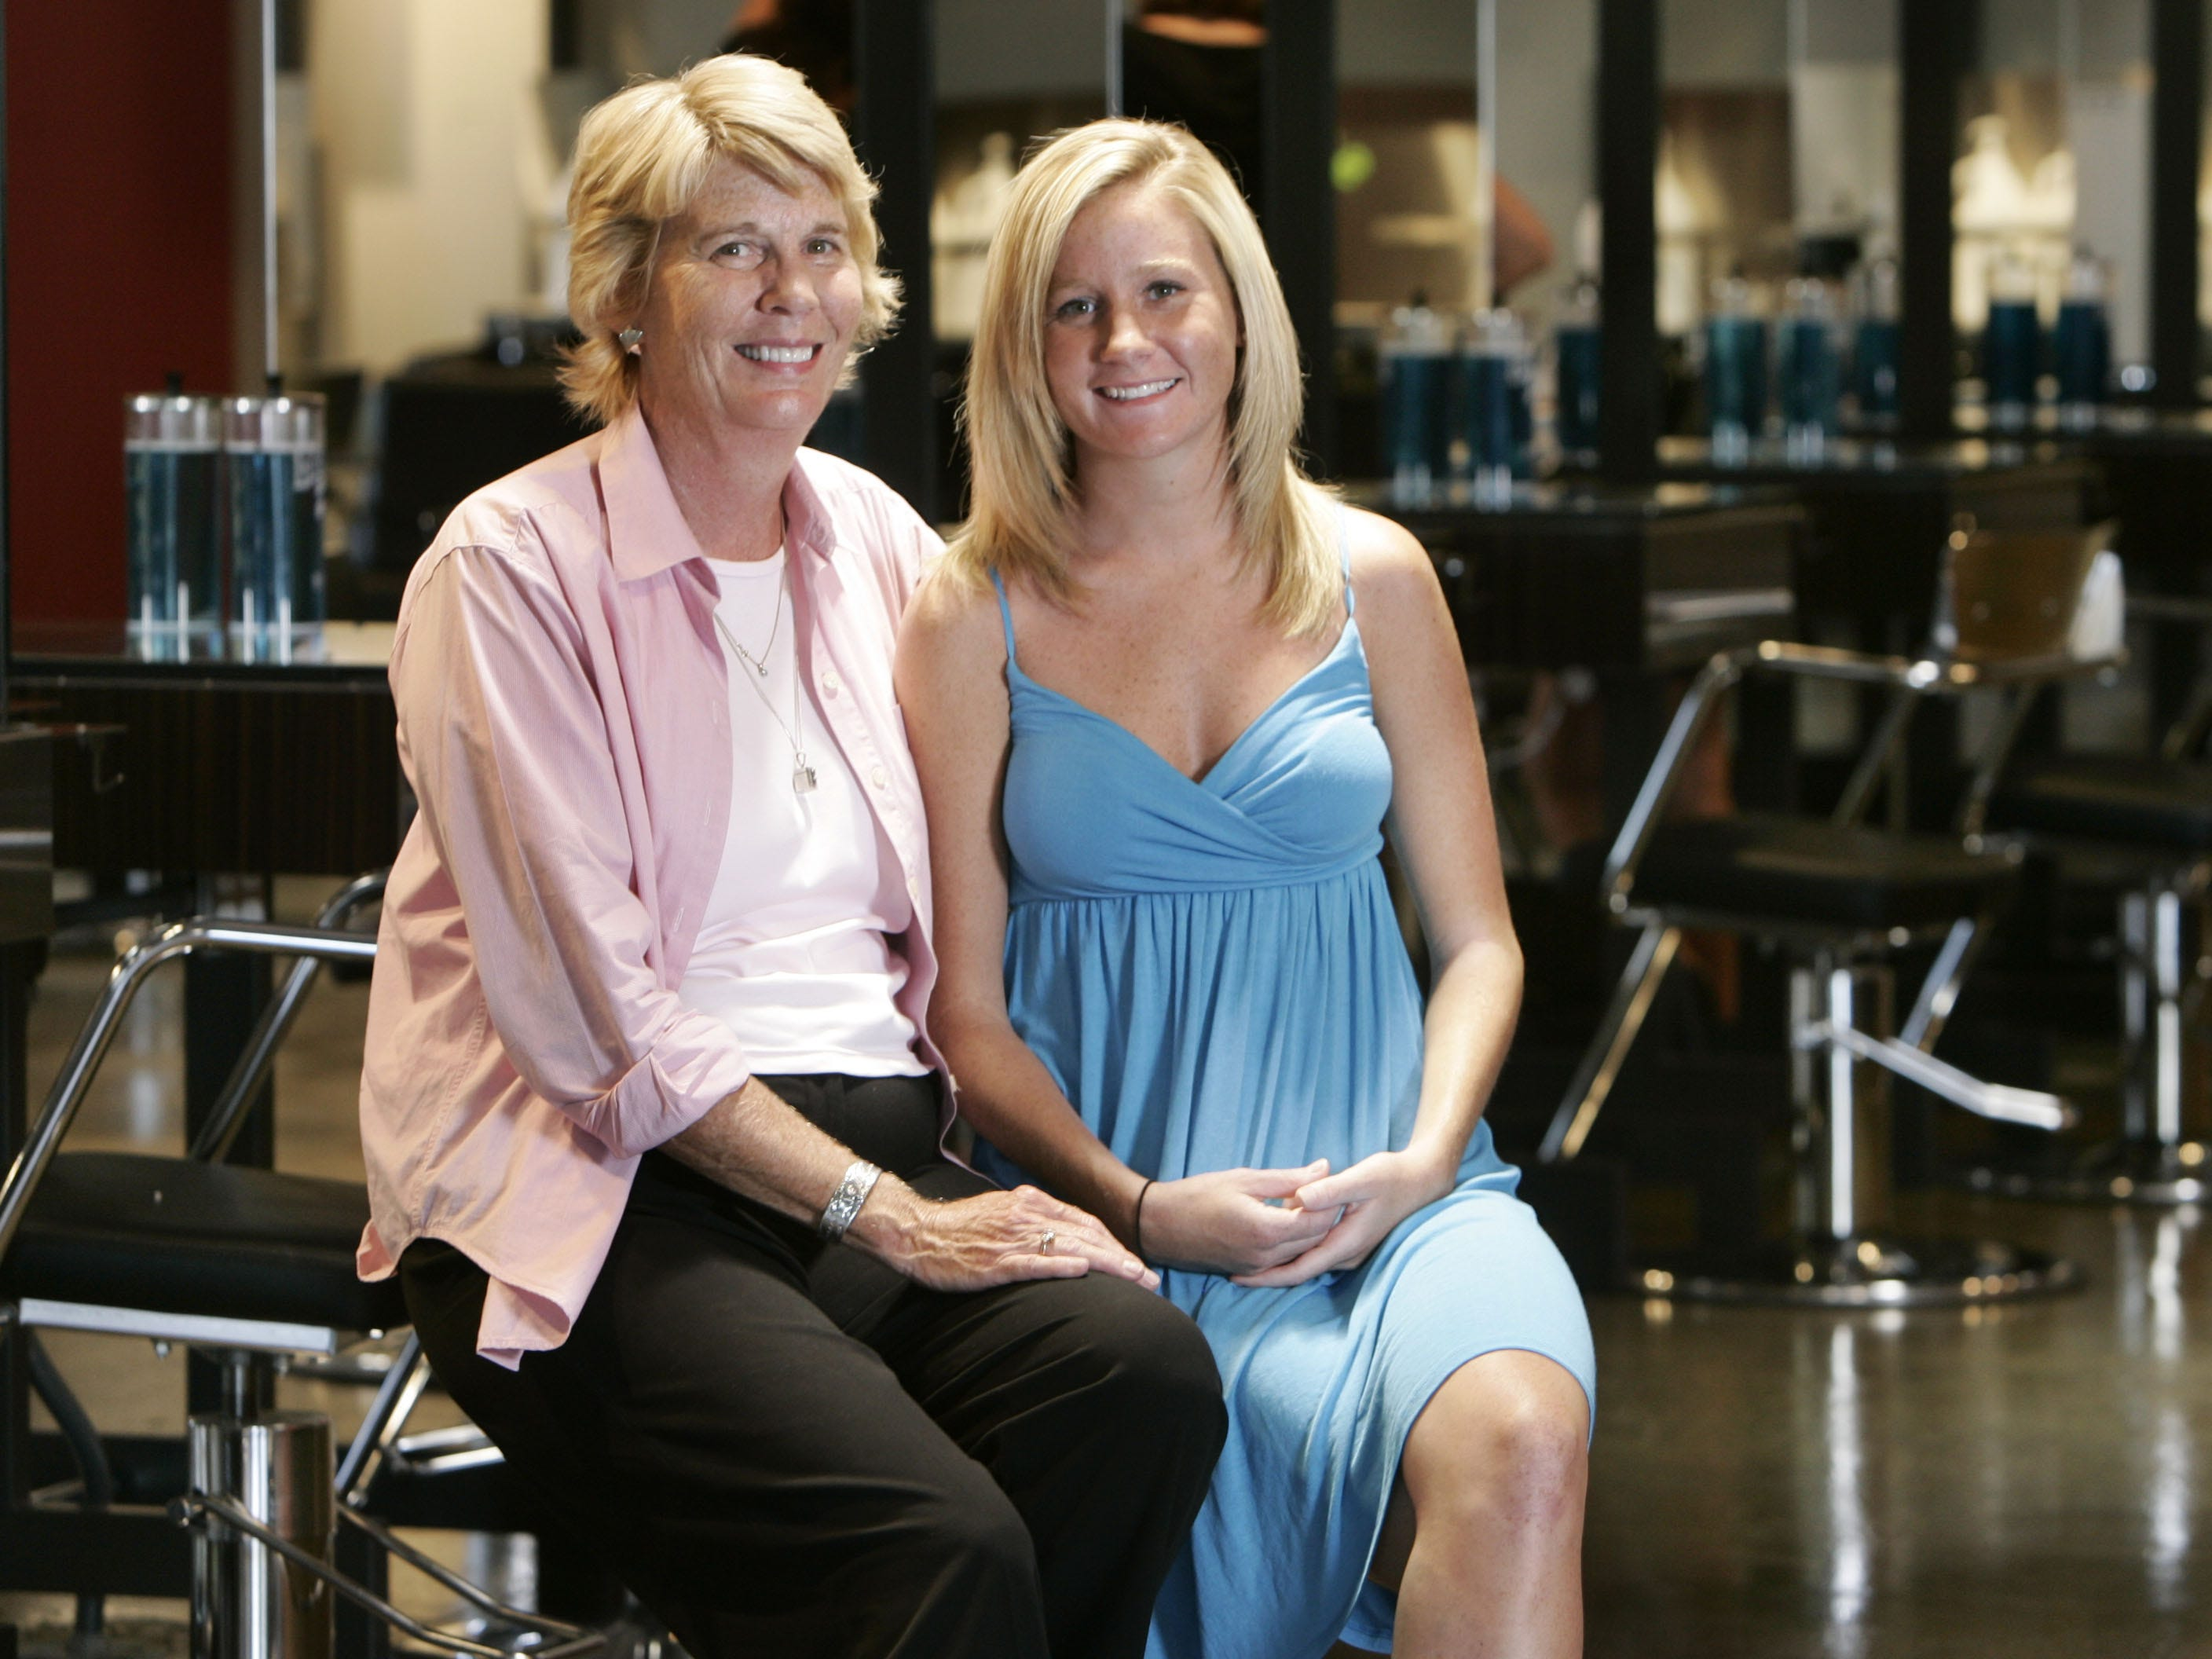 Ms. Cheap's Mary Hance poses with her daughter Anna at the Paul Mitchell Beauty School in Antioch on Aug. 6, 2007.